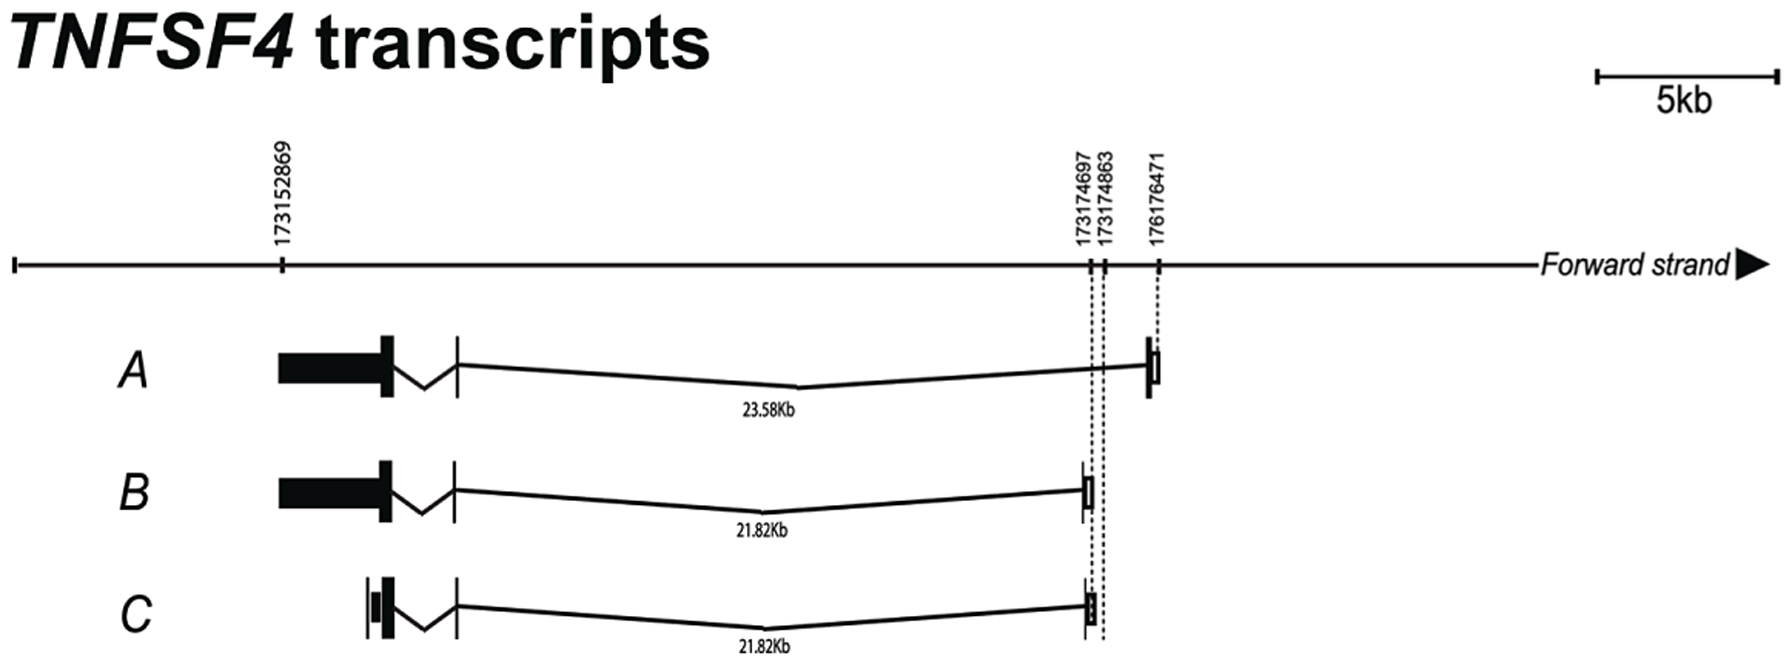 Confirmation of <i>TNFSF4</i> start site and splice variants.